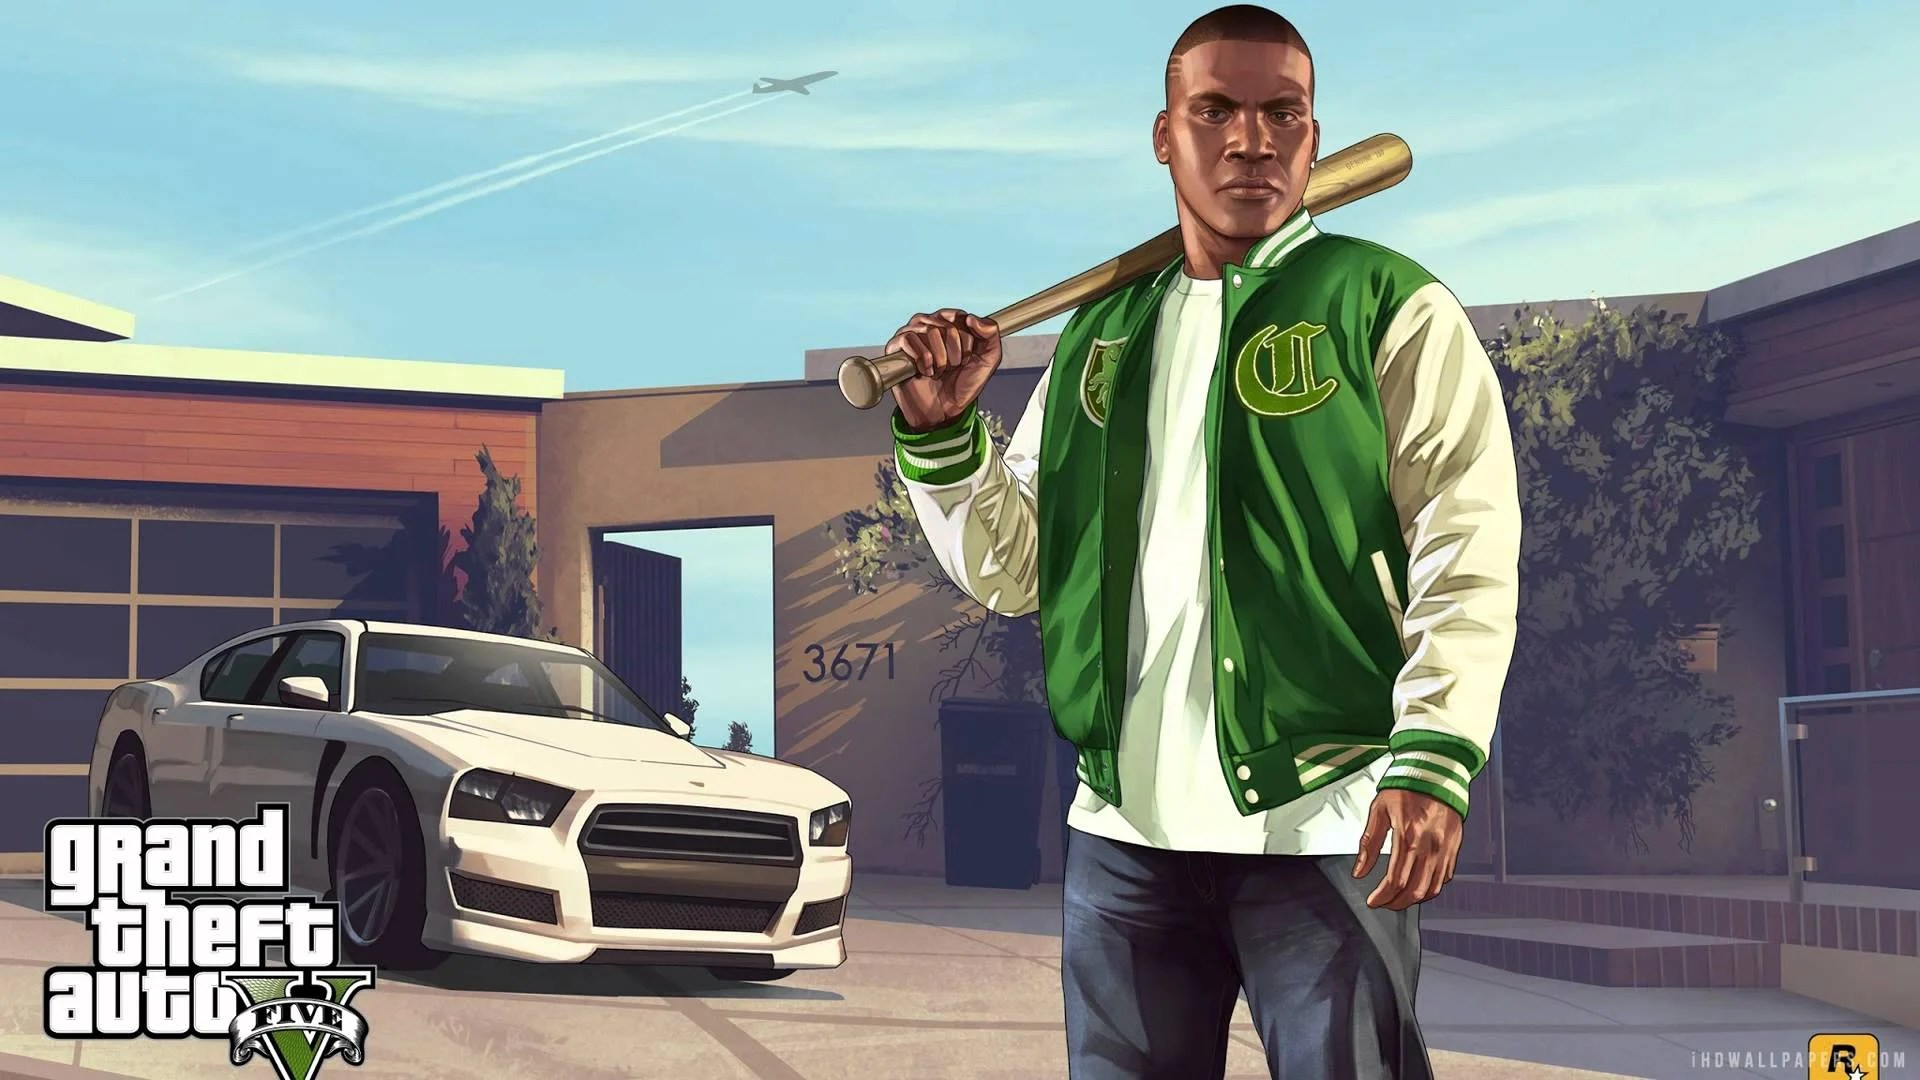 Grand Theft Auto V Wallpapers   Wallpaper Cave GTA 5 wallpapers   YouTube